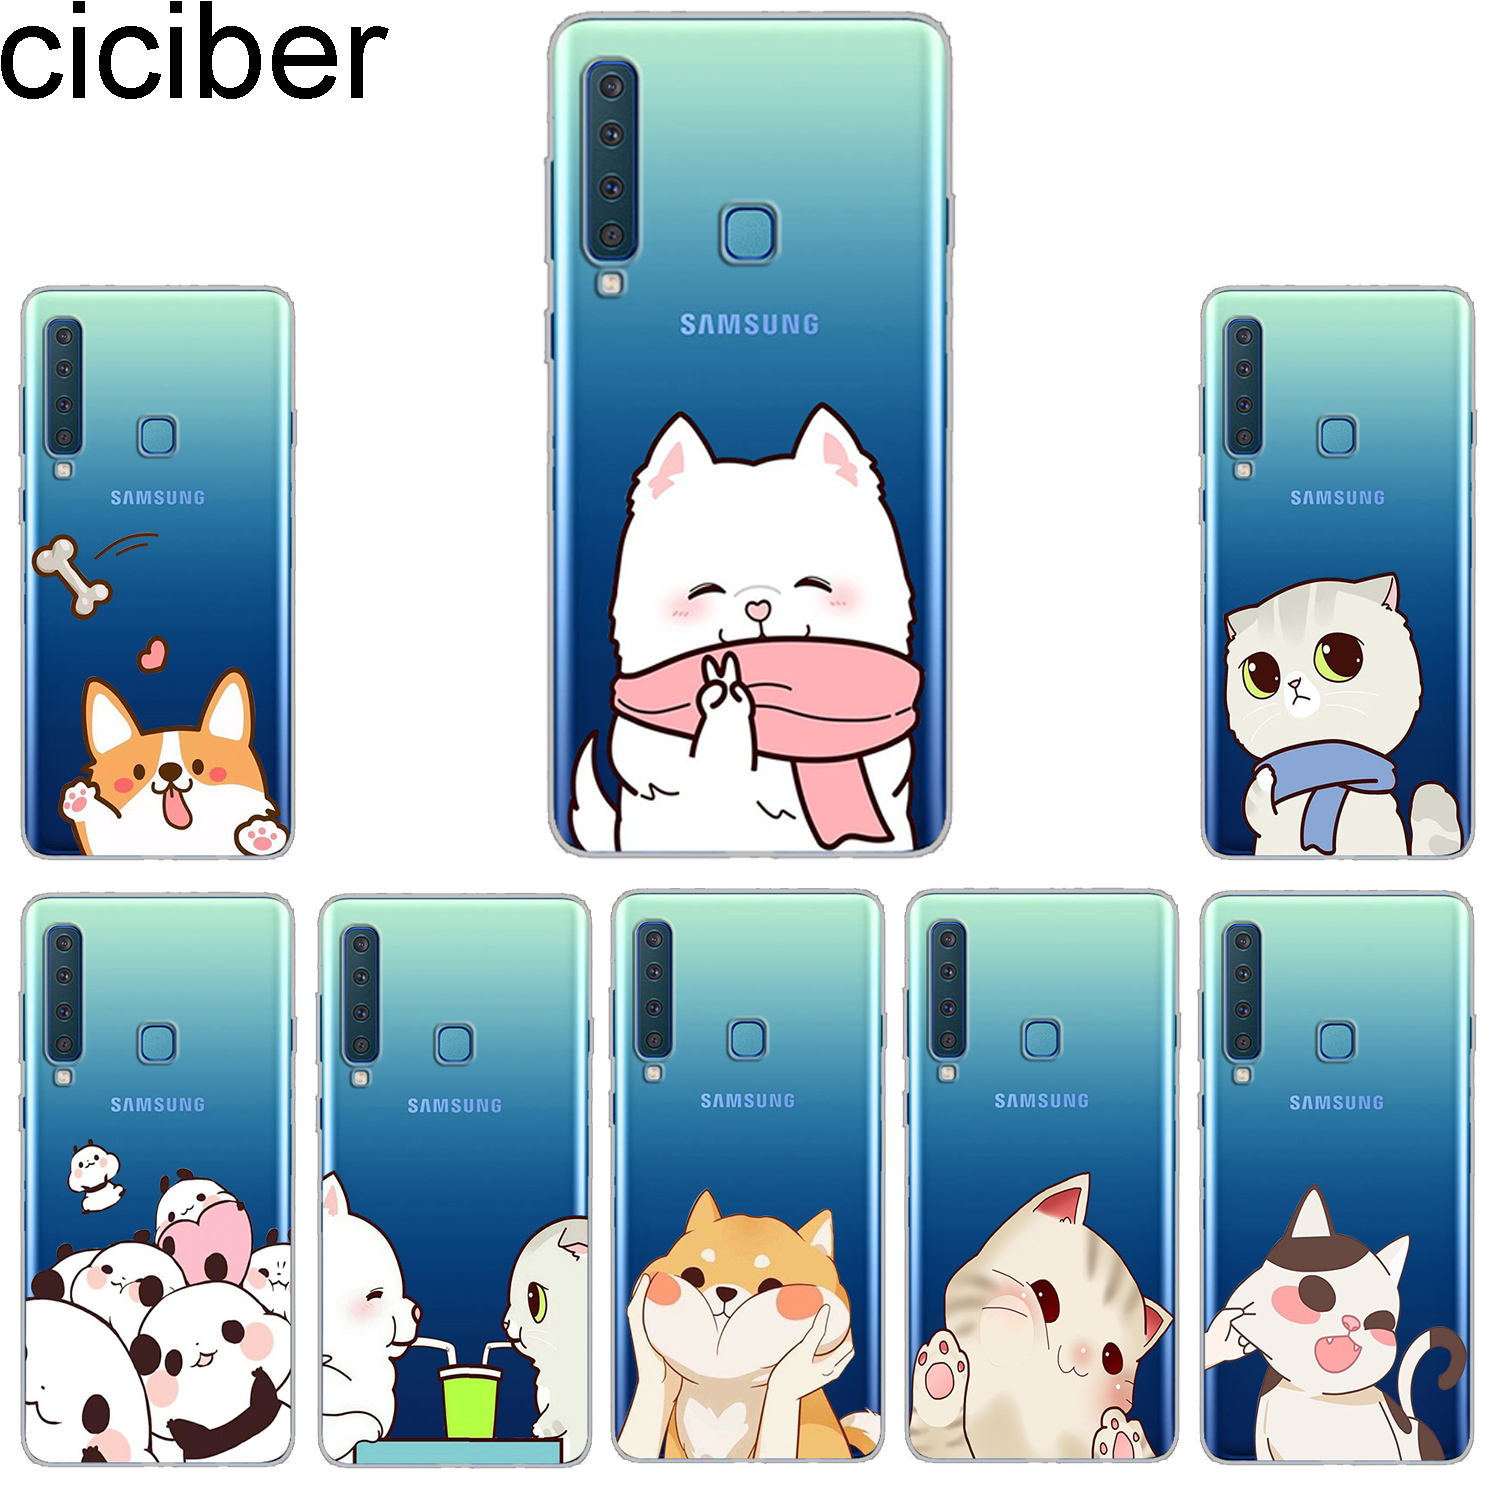 ciciber <font><b>Phone</b></font> <font><b>Case</b></font> for <font><b>Samsung</b></font> <font><b>Galaxy</b></font> A6 A8 A7 A9 Plus 2018 Star Soft Back Cover for <font><b>Samsung</b></font> A5 <font><b>A3</b></font> 2016 <font><b>2017</b></font> A6S Animal Cat <font><b>Dog</b></font> image